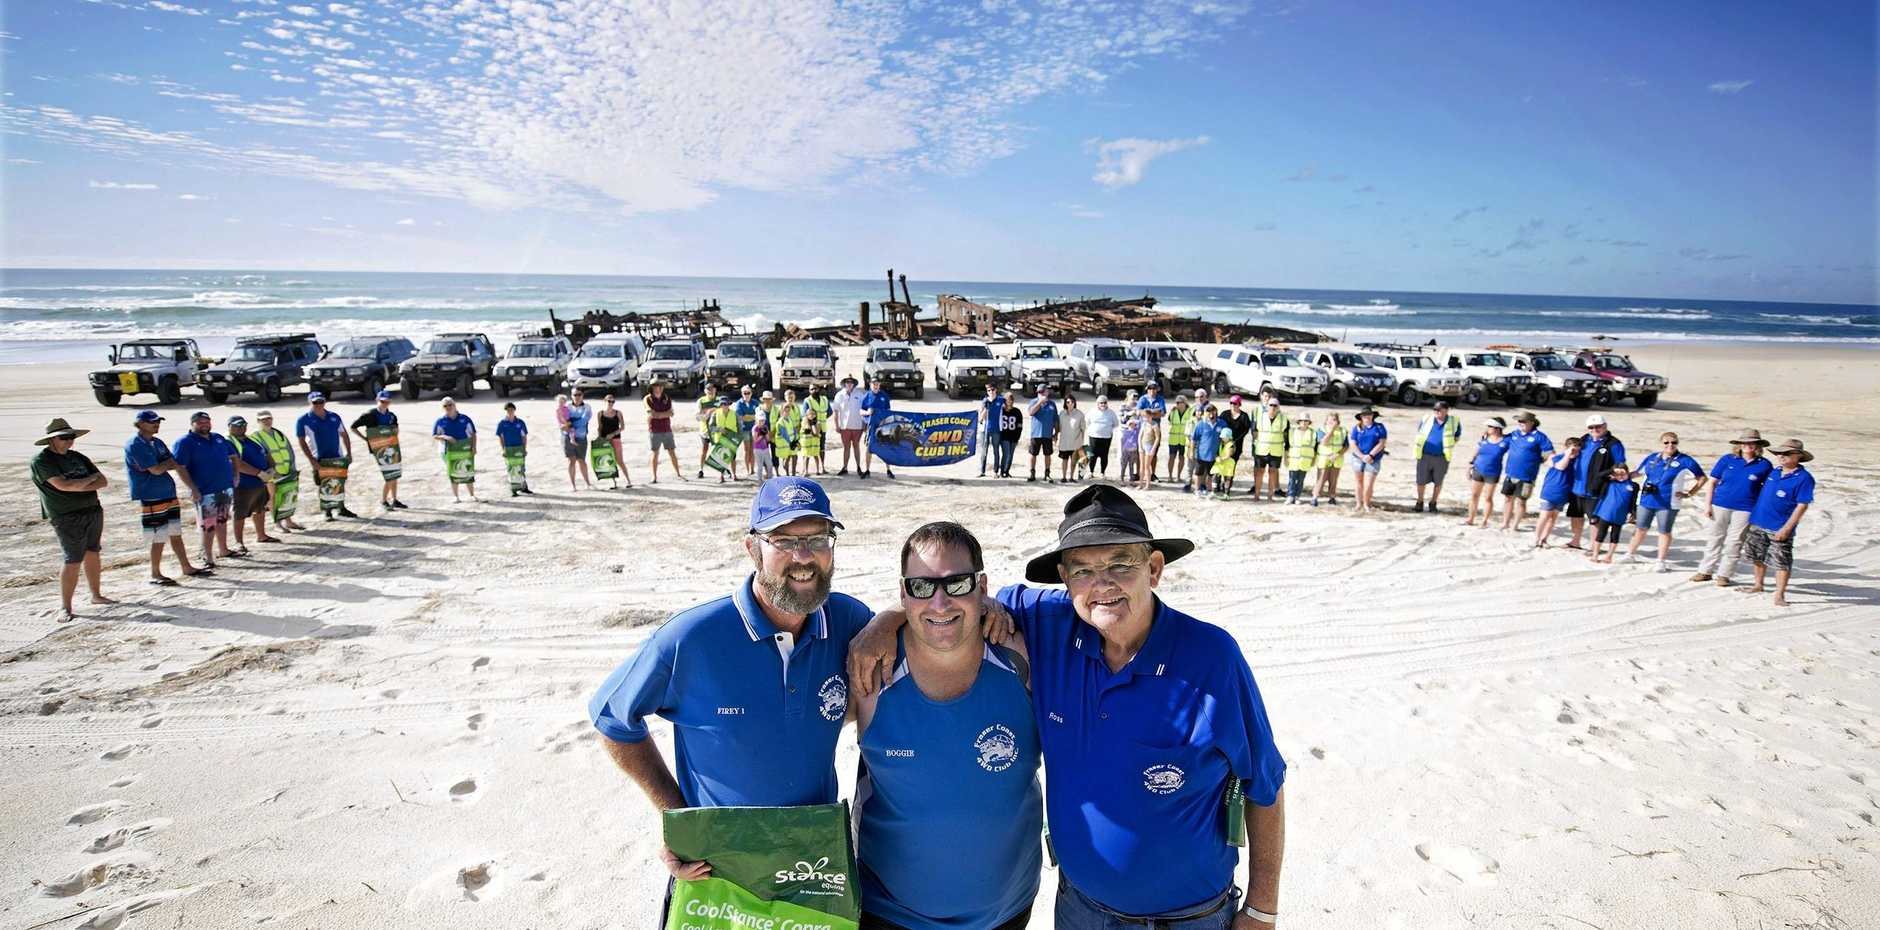 GOOD JOB: The Queensland 4WD Association along with National Parks and Wildlife and Ocean Crusaders held a clean-up event on Fraser Island at the weekend.